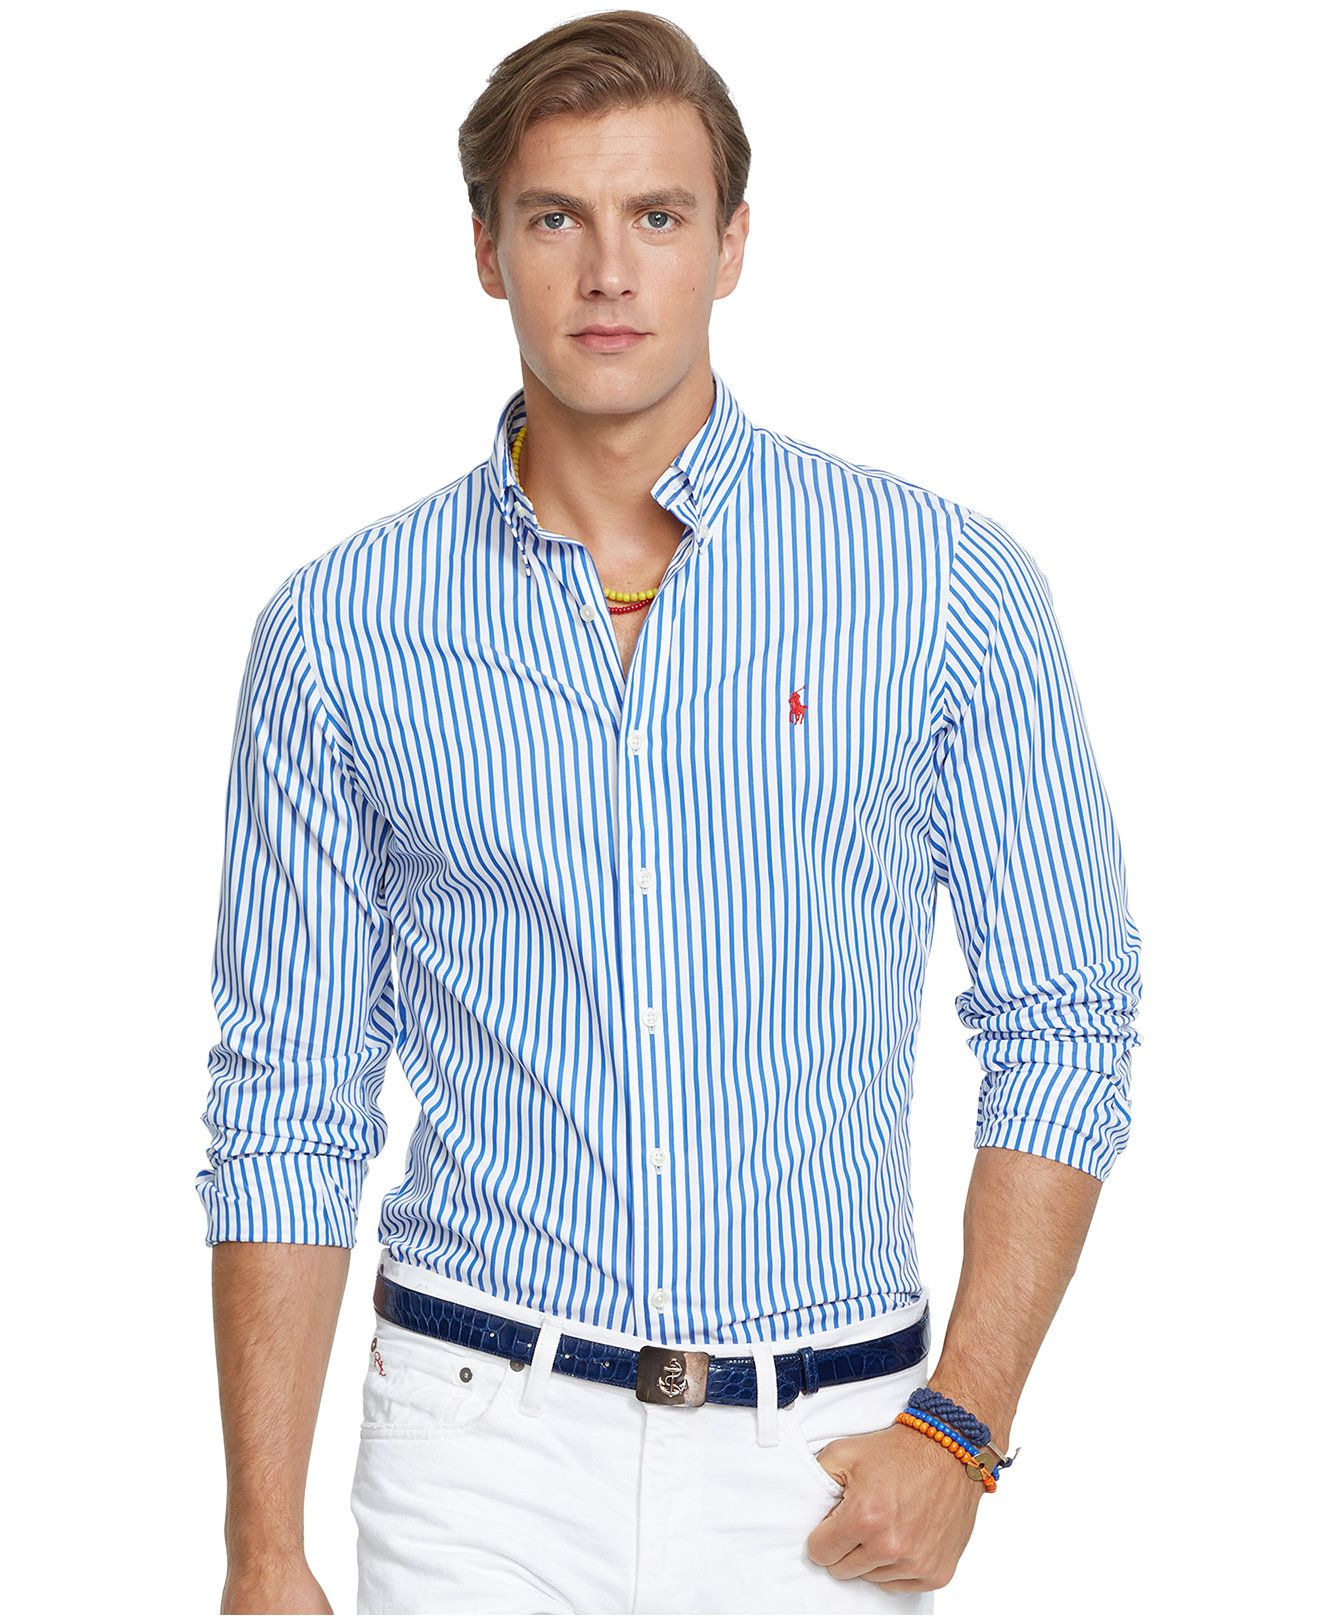 Polo Ralph Lauren Striped Poplin Shirt - Casual Button-Down Shirts